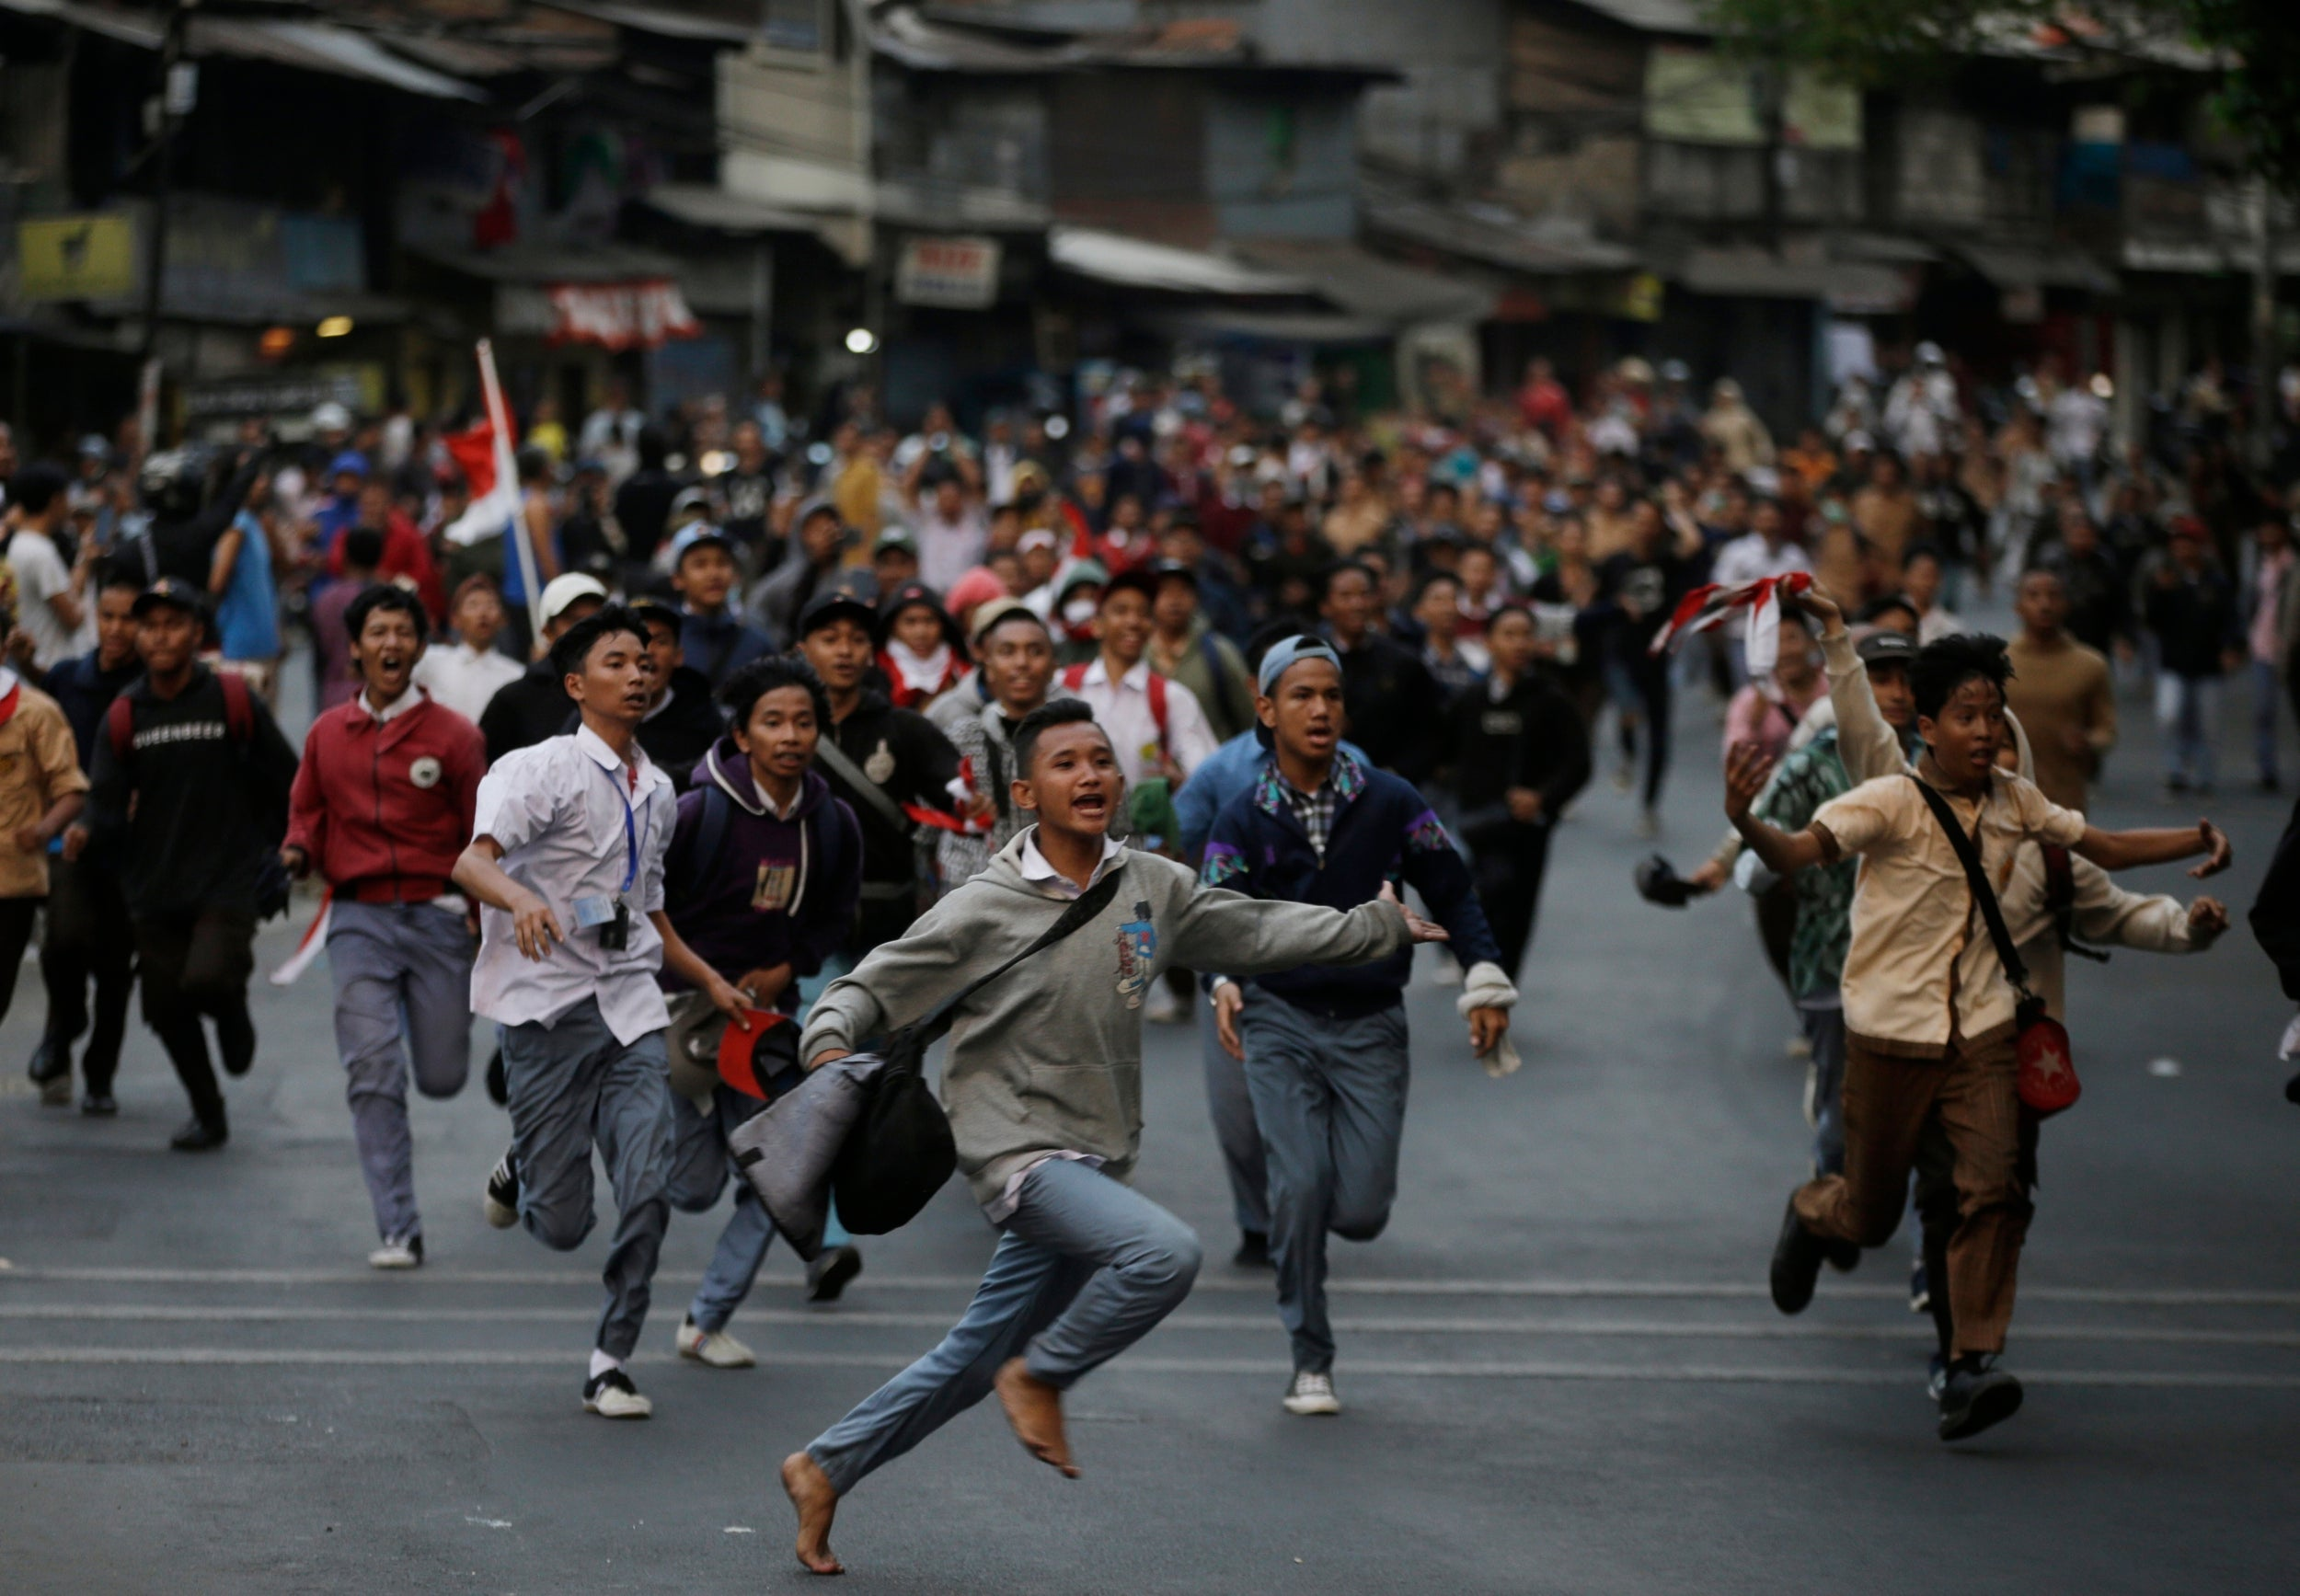 Indonesia protests: Police fire tear gas on third day of unrest over laws to ban sex outside marriage